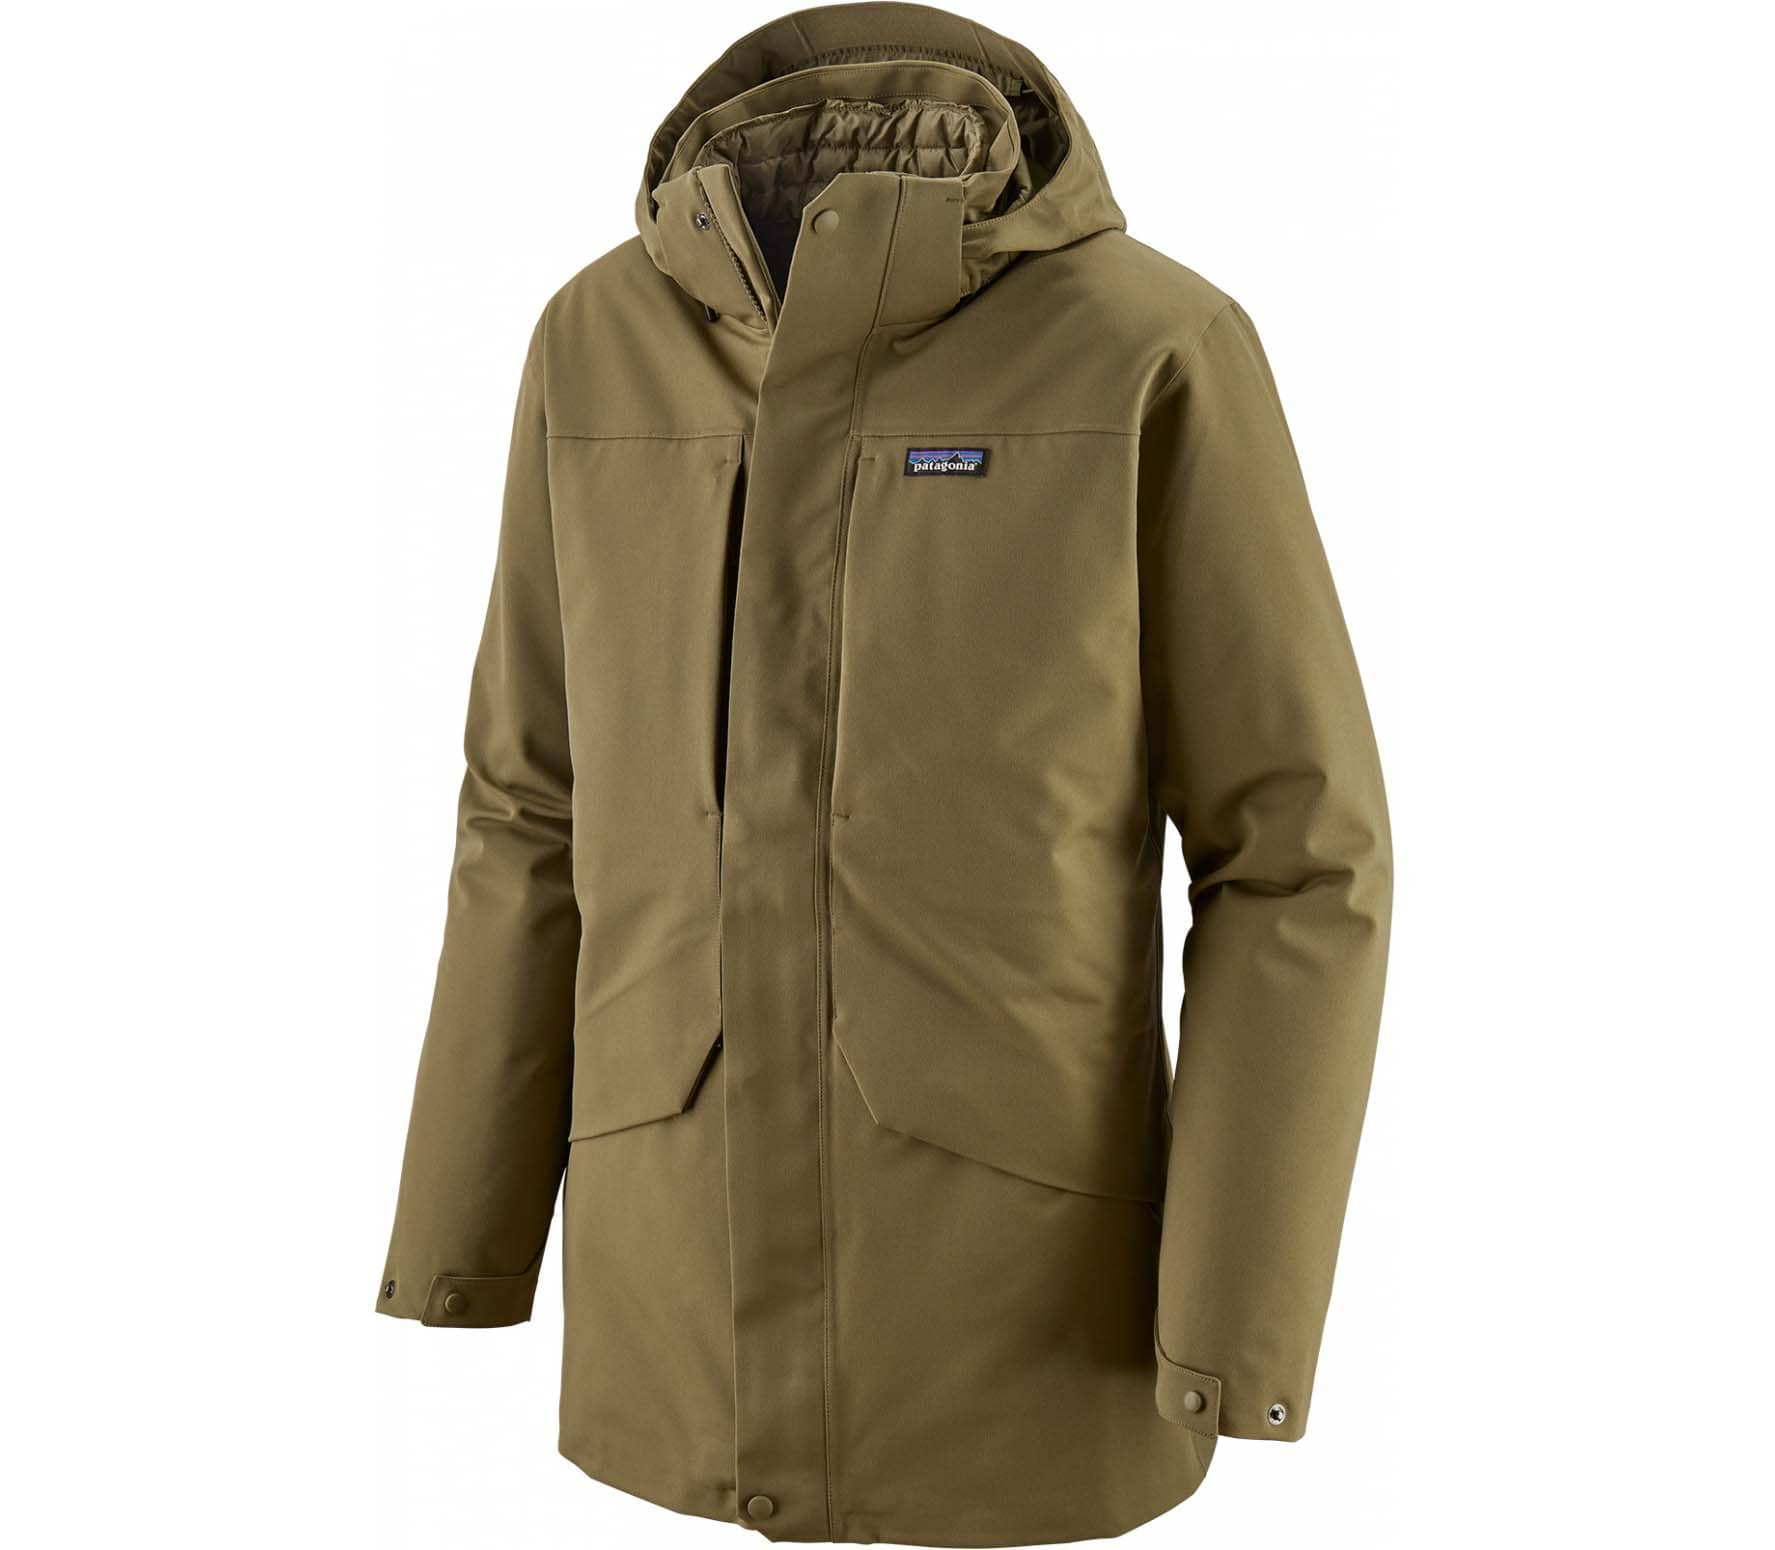 the best attitude 97eae 11250 Tres 3-in-1 Uomo Parka in piumino